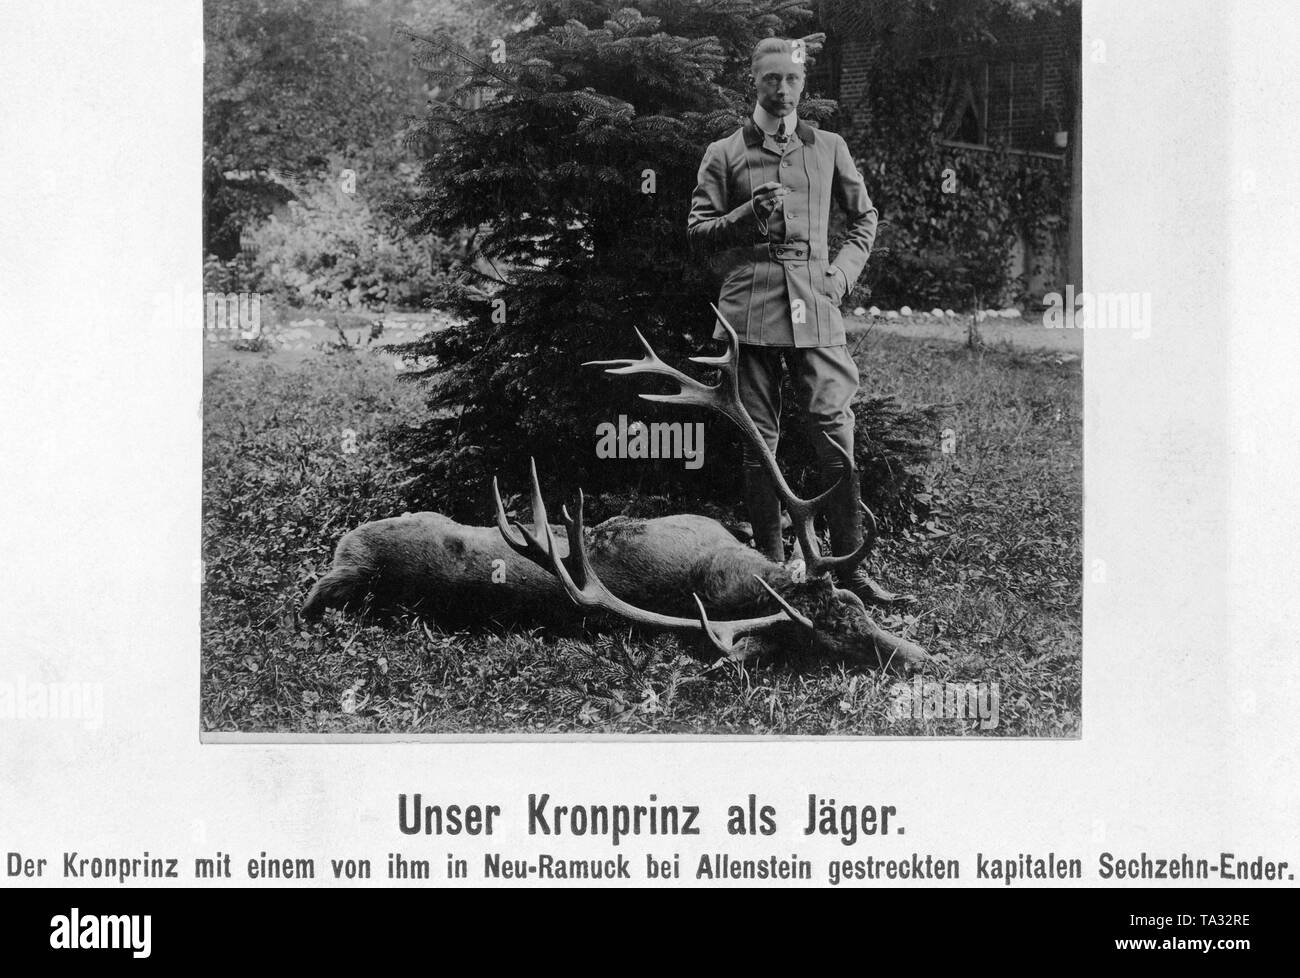 The Crown Prince with a sixteen pointer shot by him in Neu-Ramuck near Allenstein. - Stock Image